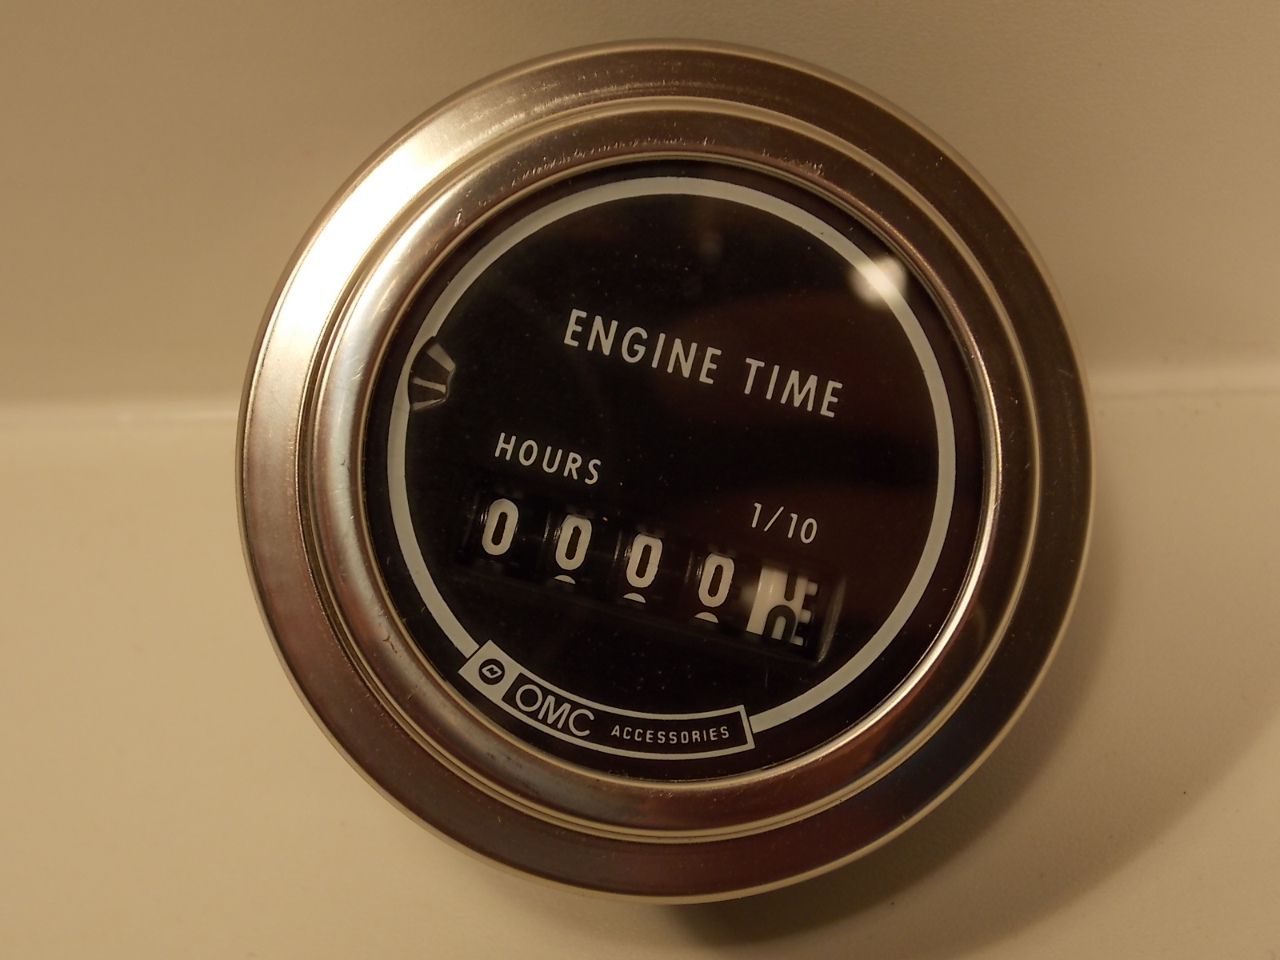 Vintage Hour Meter : New johnson evinrude omc vintage hour meter